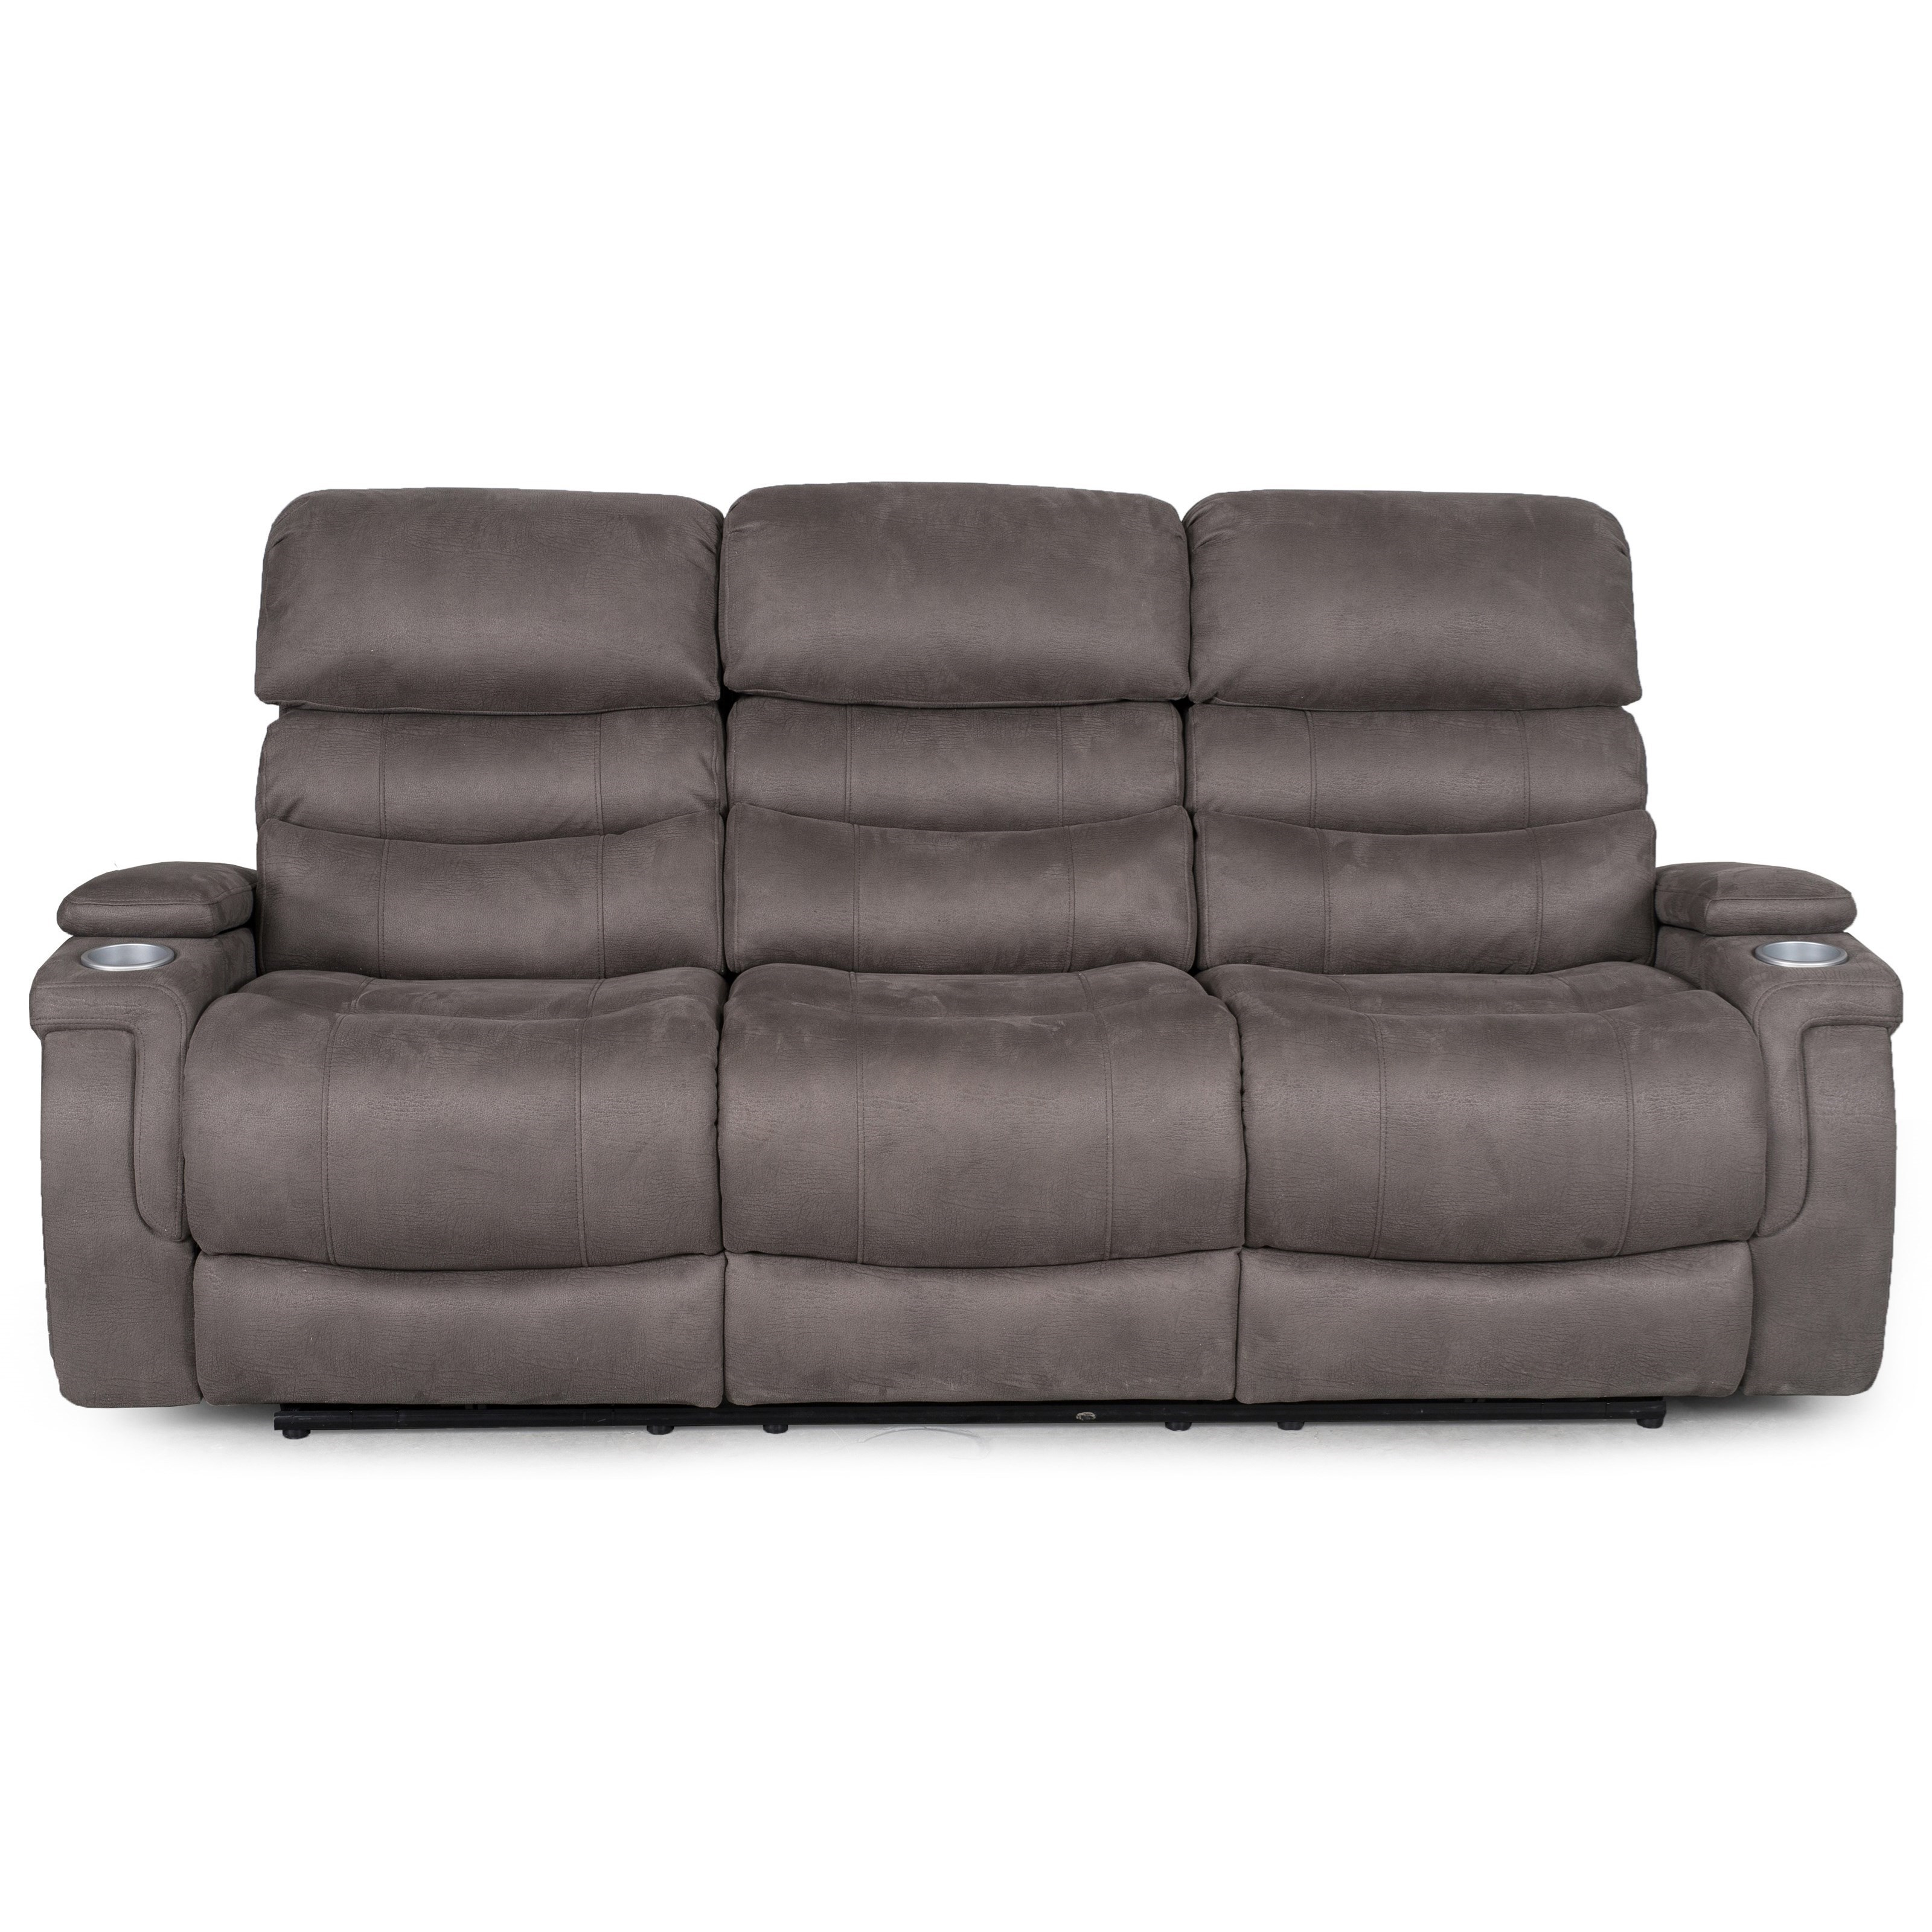 Synergy Home Furnishings 494Power Reclining Sofa ...